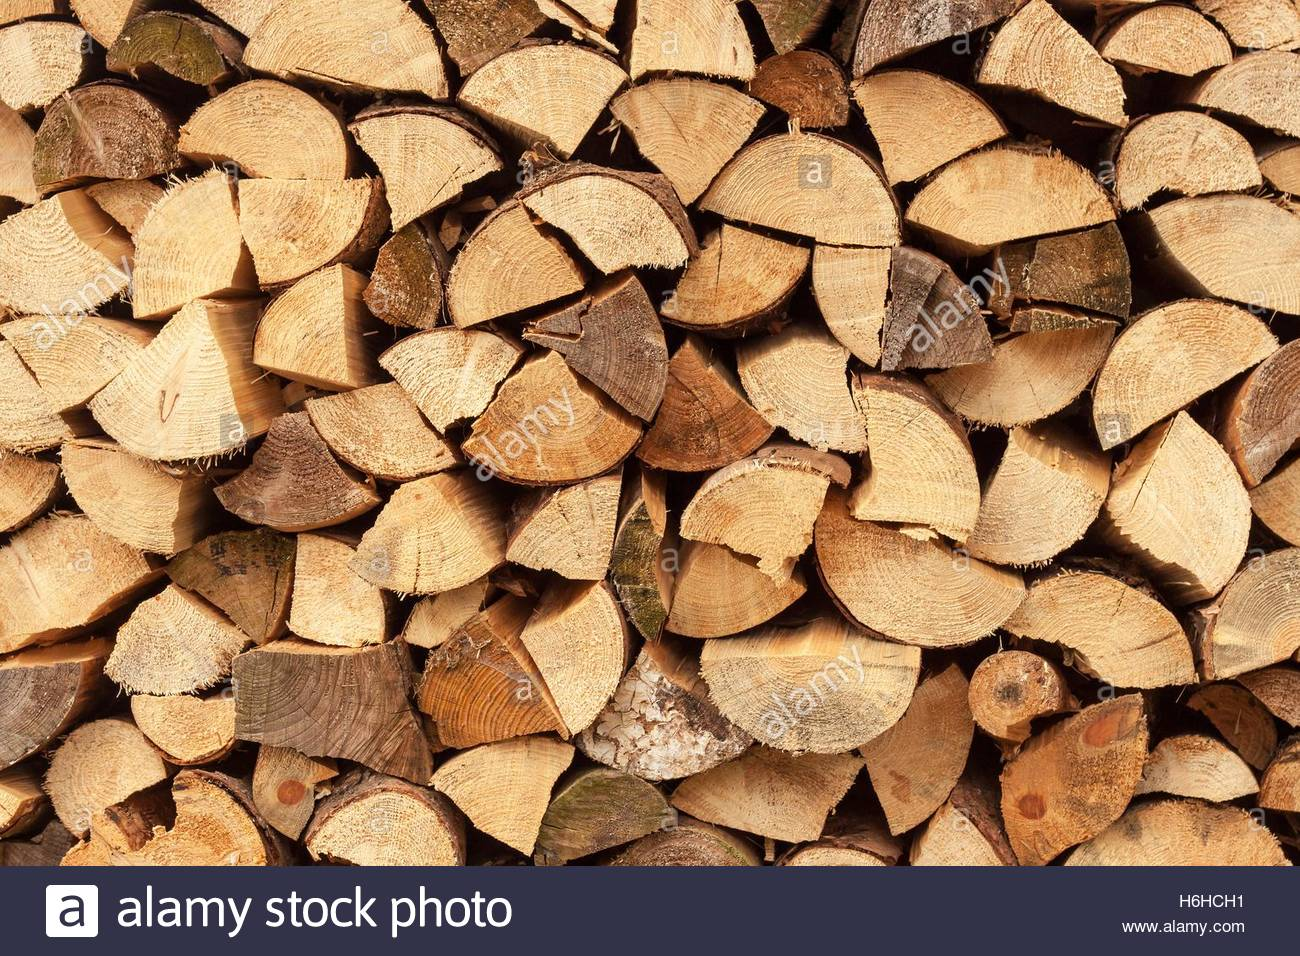 wall firewood Background of dry chopped firewood logs in a pile 1300x956